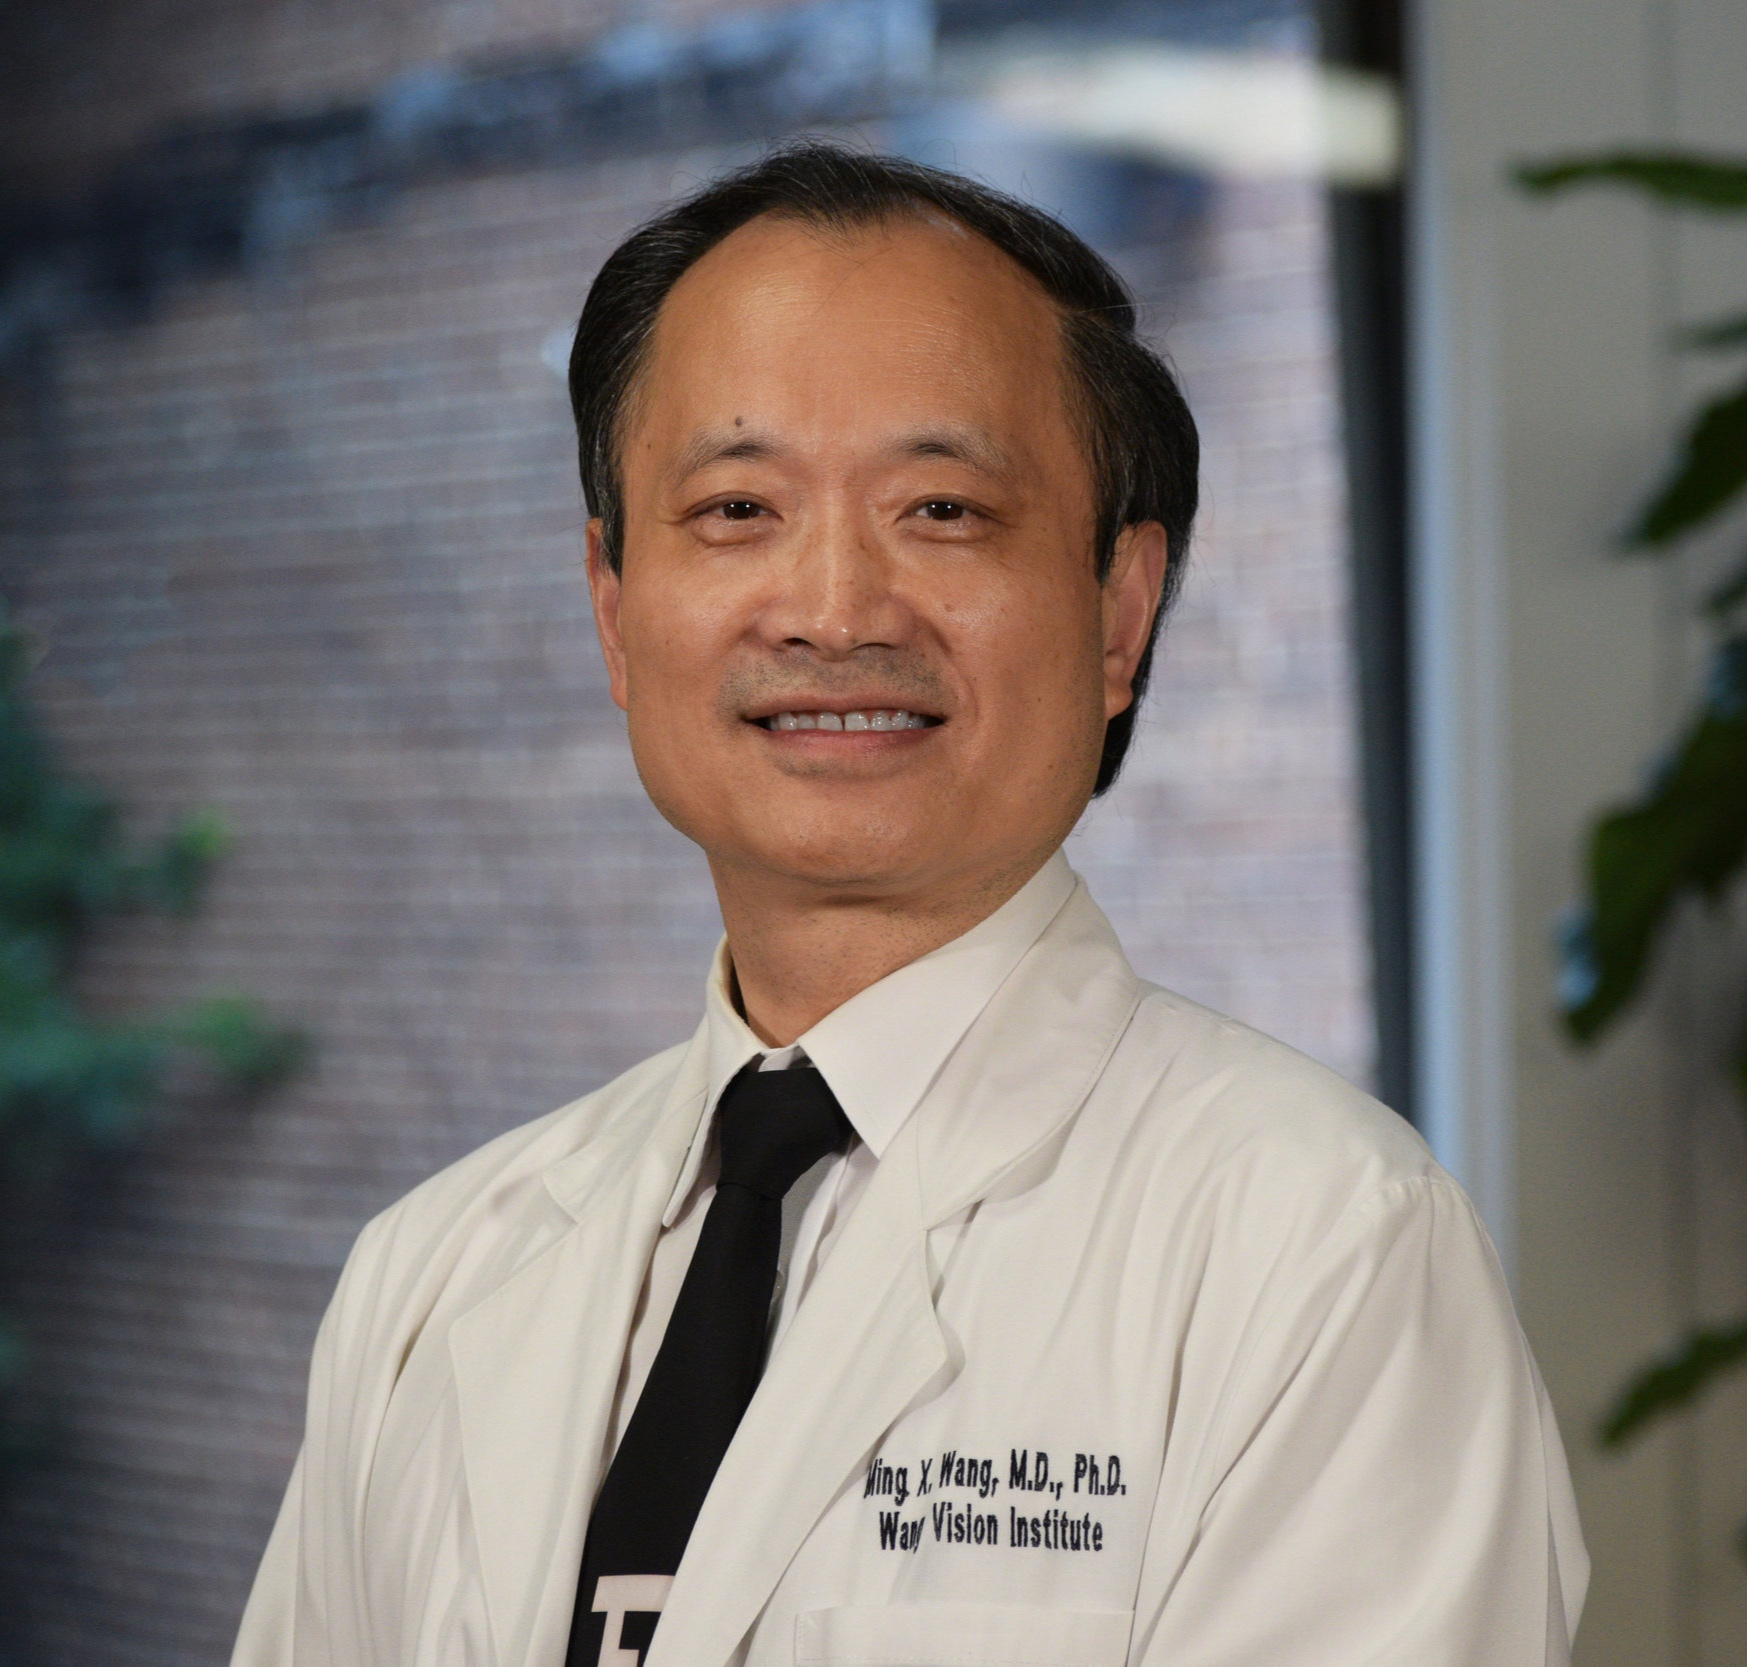 Meet Our Medical AdvisorDr. Ming Wang - Dr. Wang Harvard & MIT (MD, magna cum laude); PhD (laser physics) is one of the leading refractive surgeons in the US. As a board certified ophthalmologist, Dr. Wang is one of the few laser cataract and laser LASIK surgeons with a PhD in laser physics.